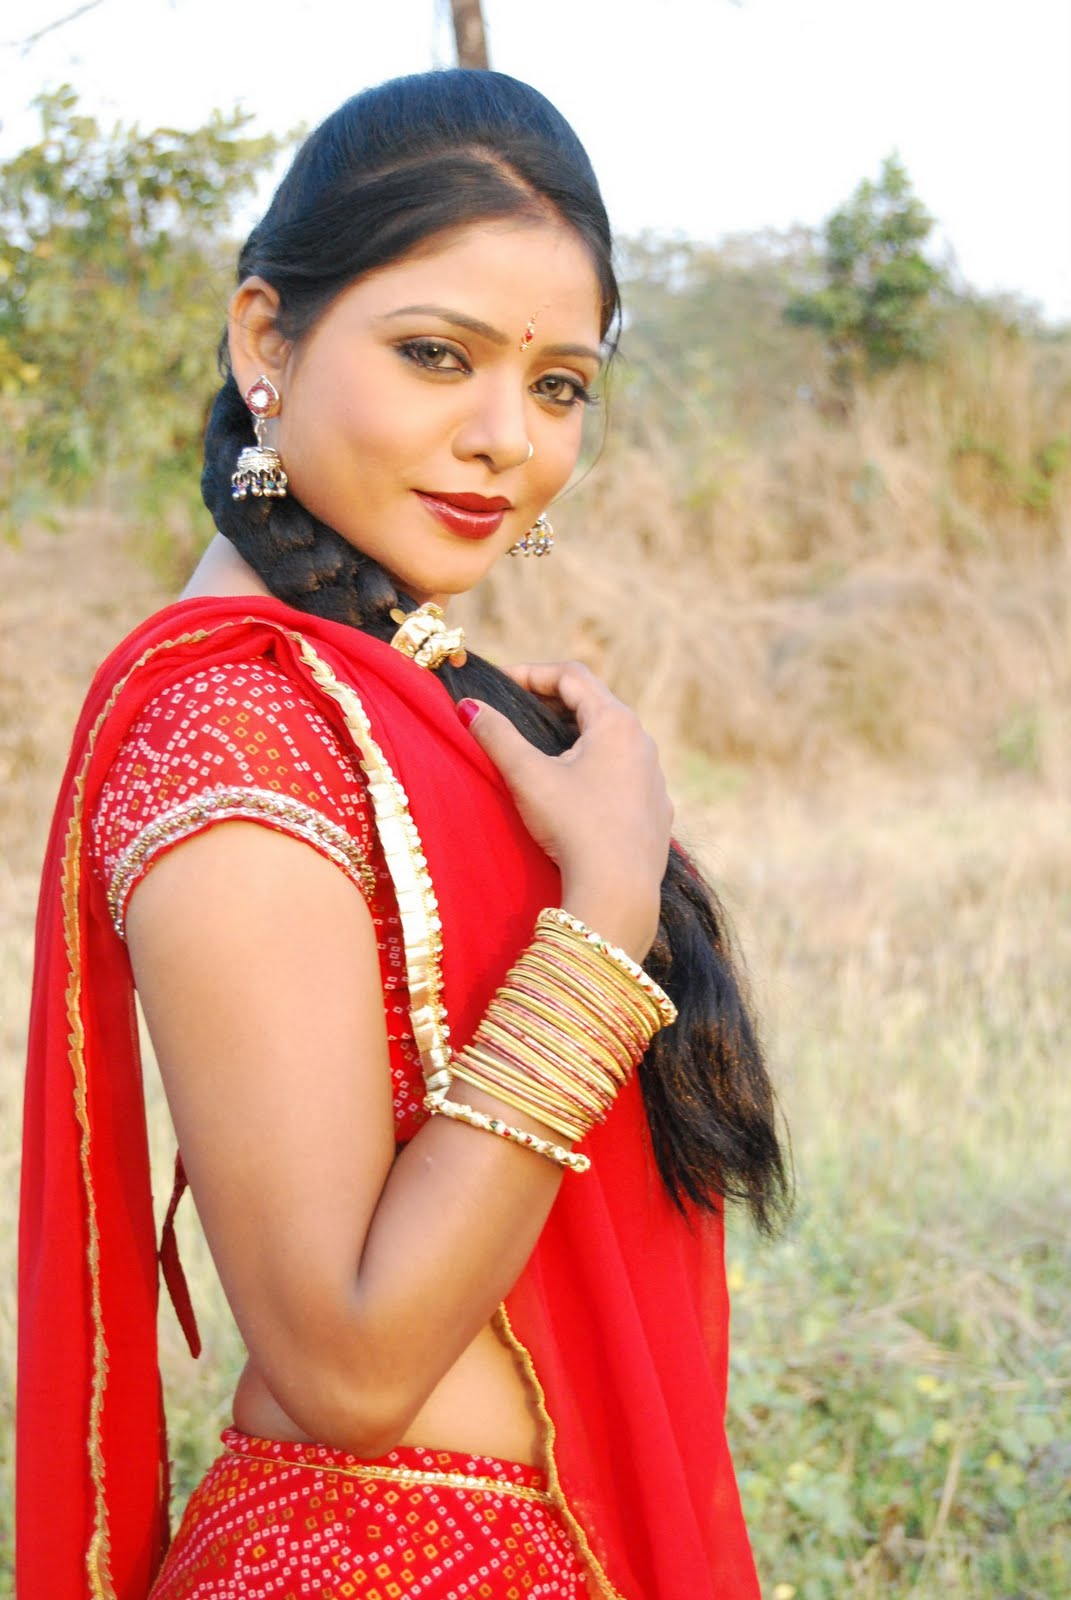 Bhojpuri Actress Priya Sharma wikipedia, Biography, Age, Priya Sharma Age, boyfriend, filmography, movie name list wiki, upcoming film, latest release film, photo, news, hot image